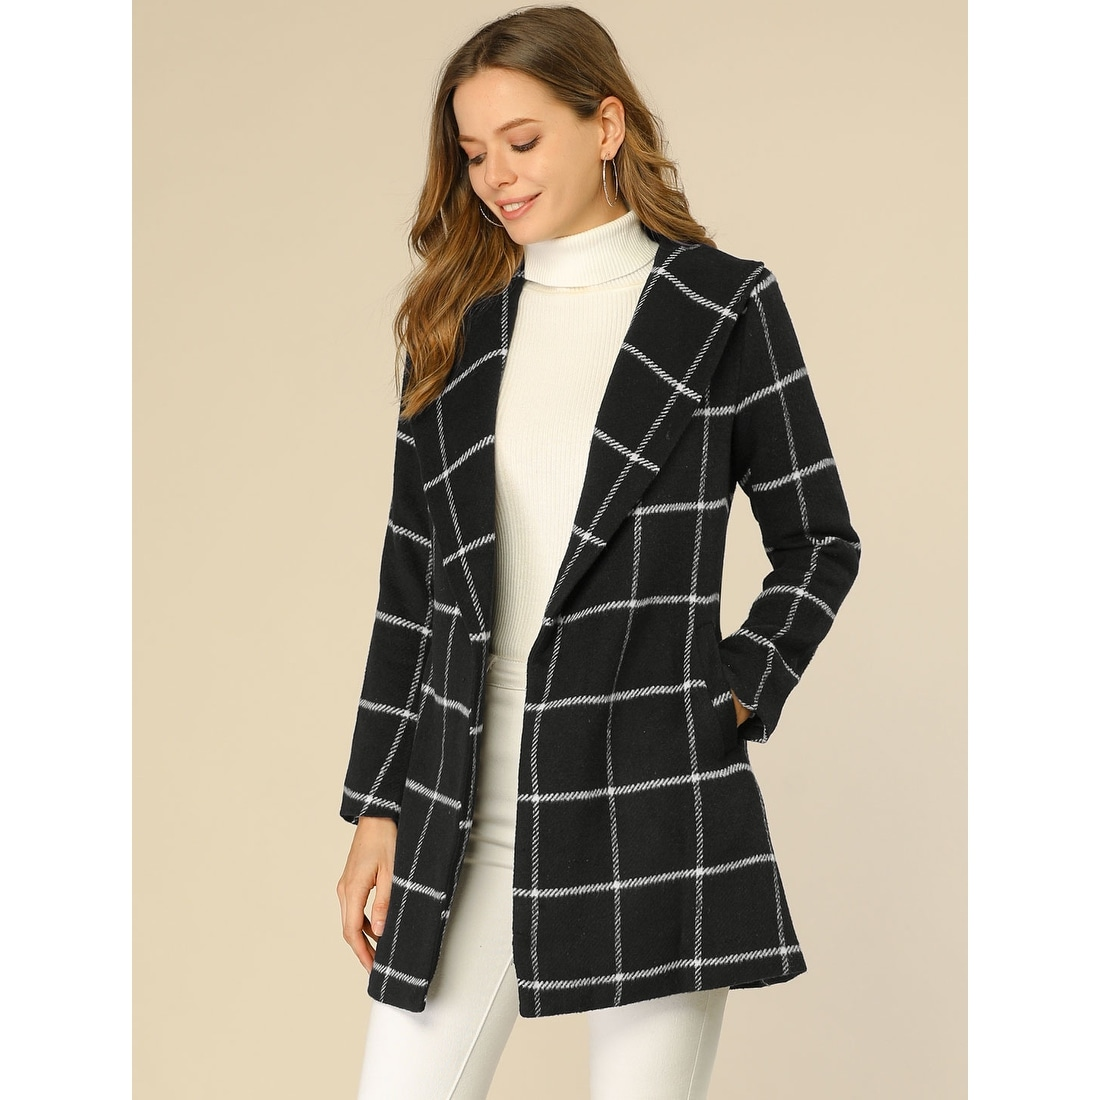 Allegra K Womens Buffalo Plaid Shawl Collar Lapel Double Breast Belted Winter Coat Overcoat with Pockets